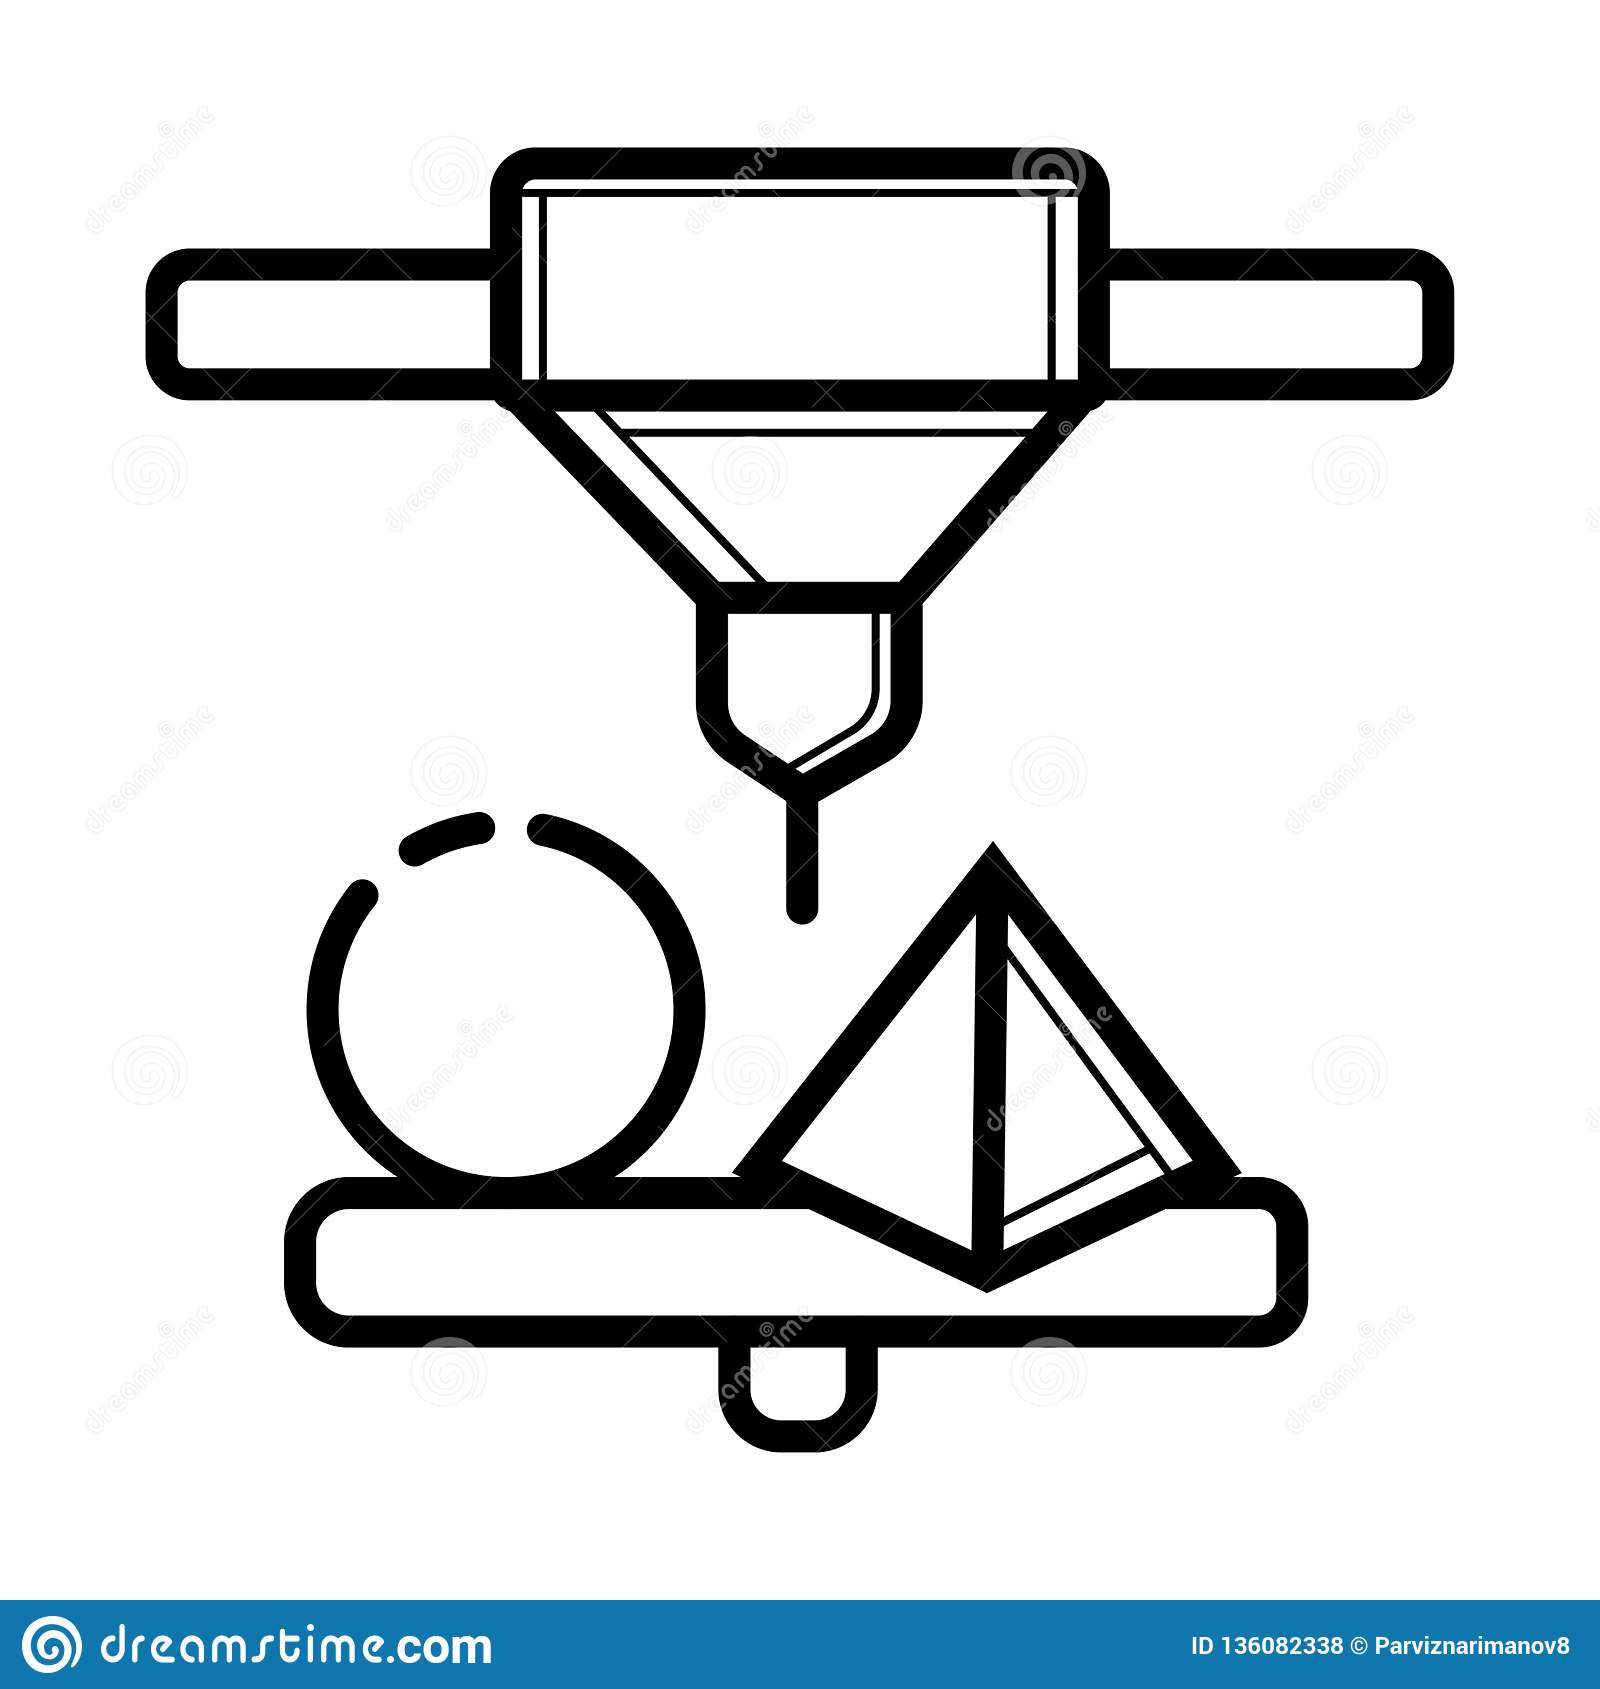 3d printer vector icon printing stock illustration illustration of manufacturing construction 136082338 https www dreamstime com d printer vector icon printing d printer vector icon printing image136082338